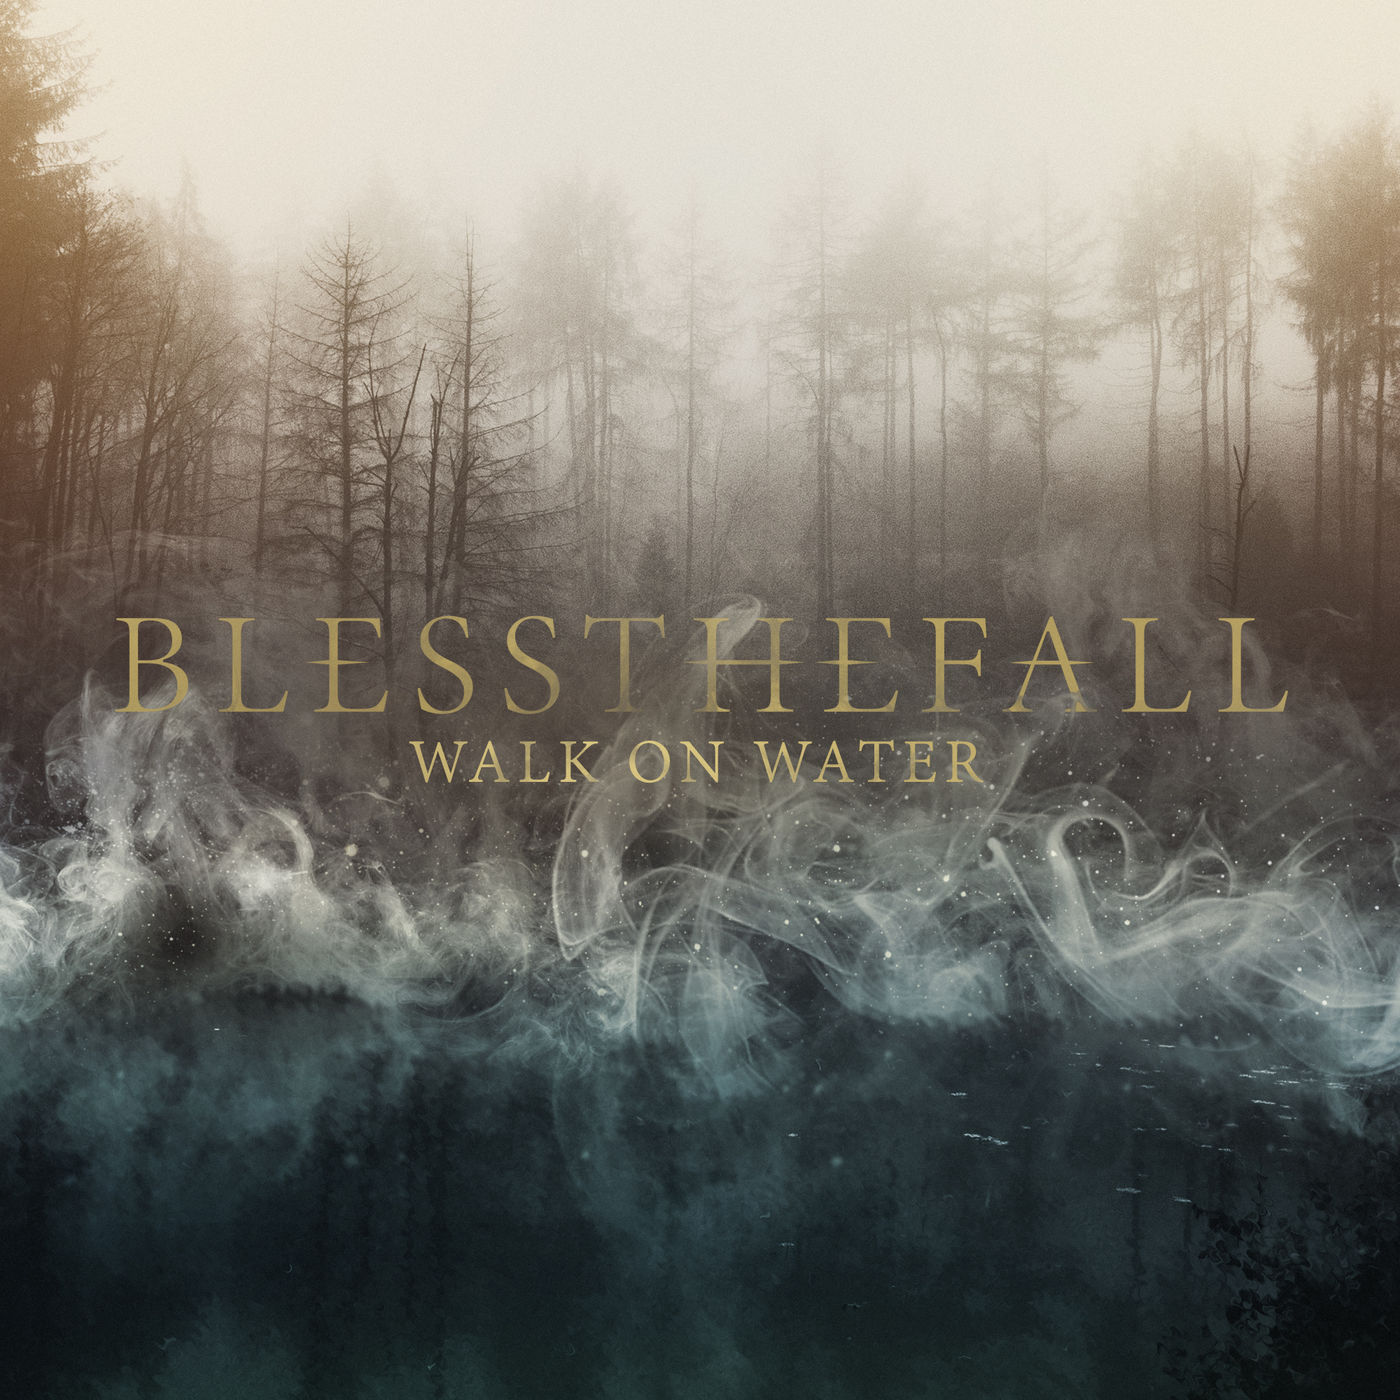 Blessthefall – Walk on Water [single] (2015)